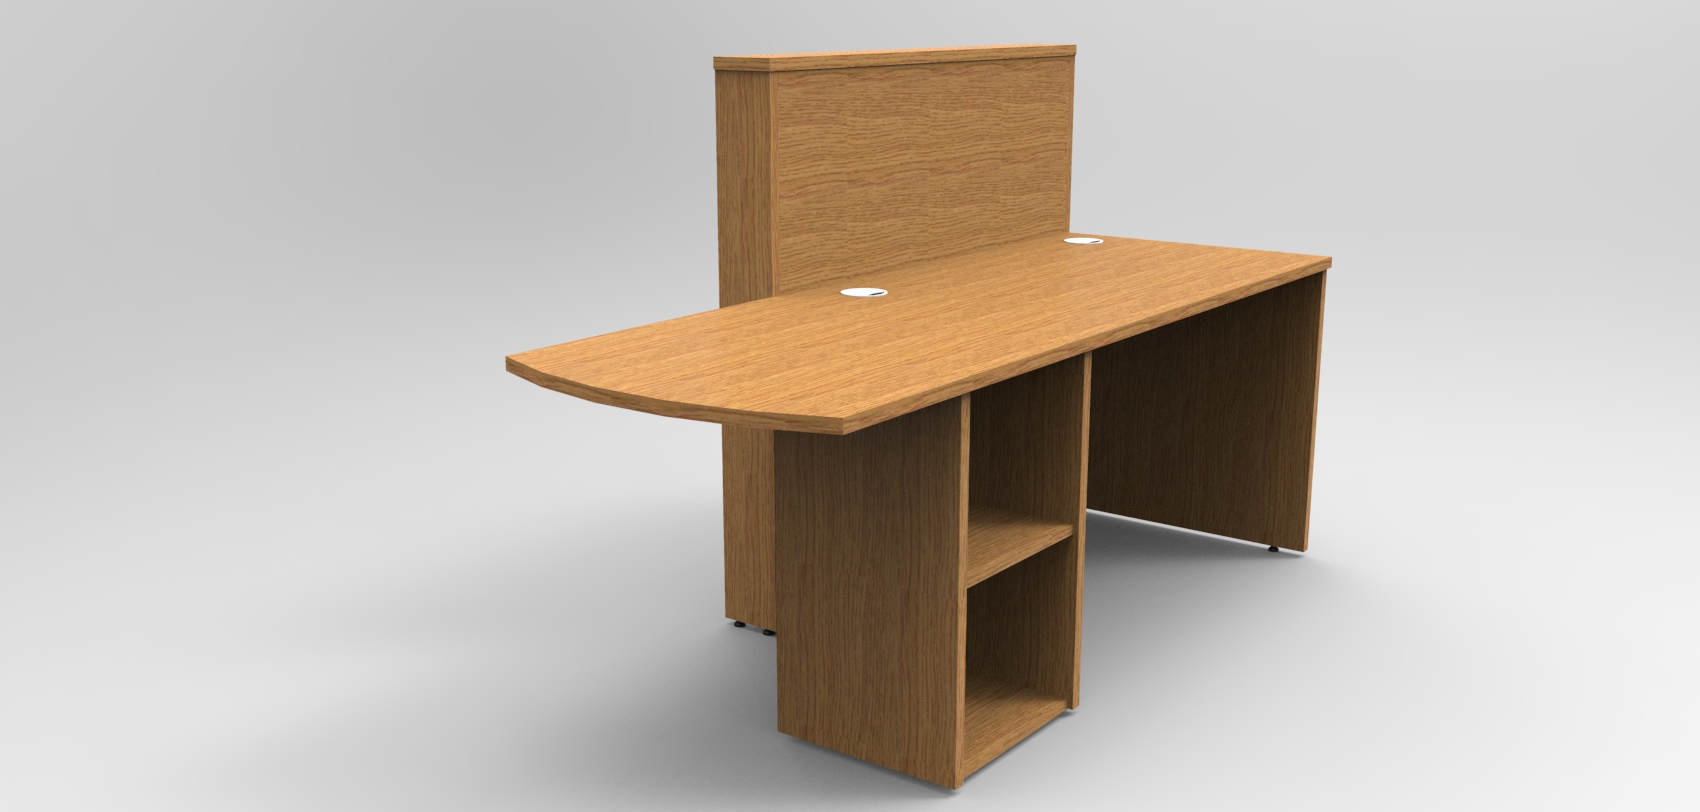 Image 5UB - Tall Union compact Oak reception desk with extension rear view showing the shelf storage